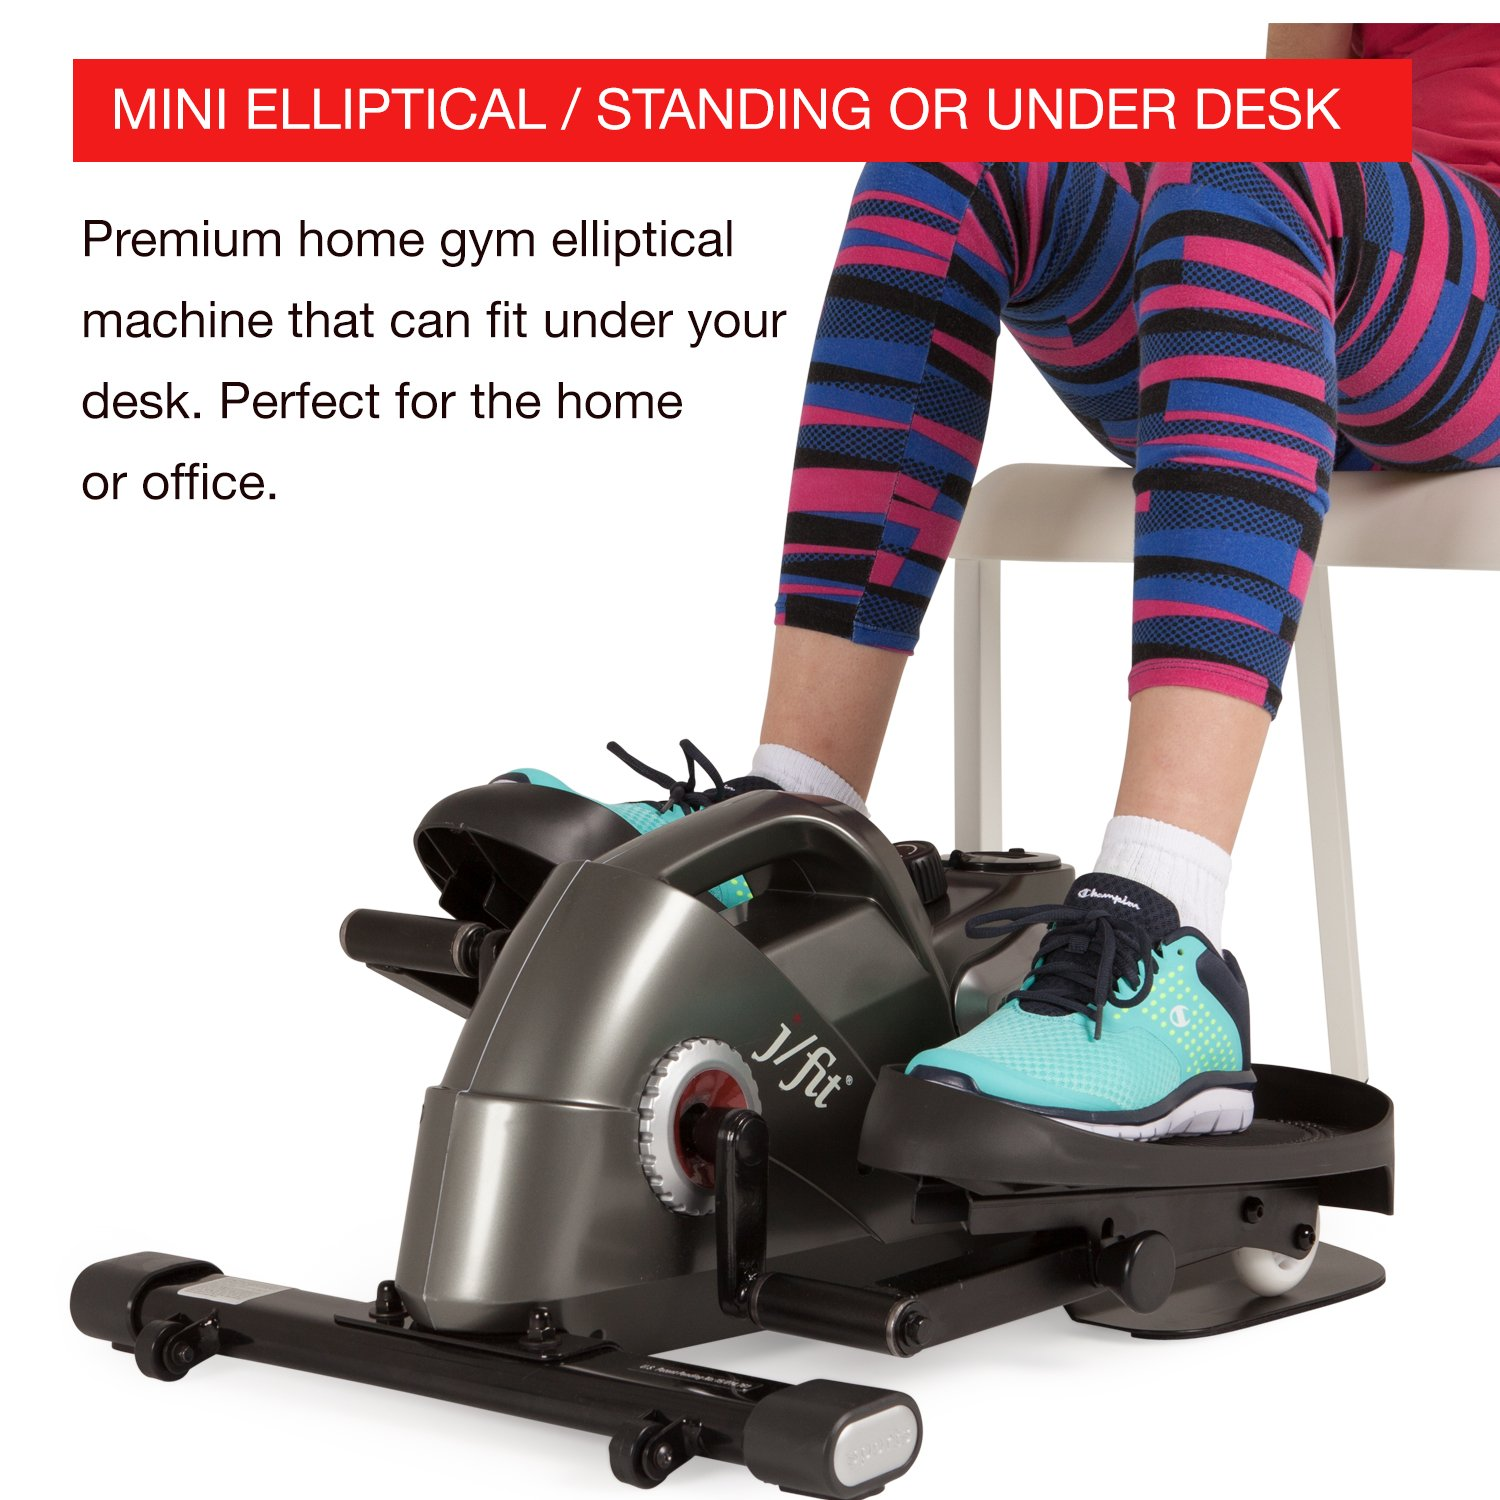 High Quality Amazon.com : J/Fit Under Desk U0026 Stand Up Mini Elliptical, Pewter : Sports U0026  Outdoors